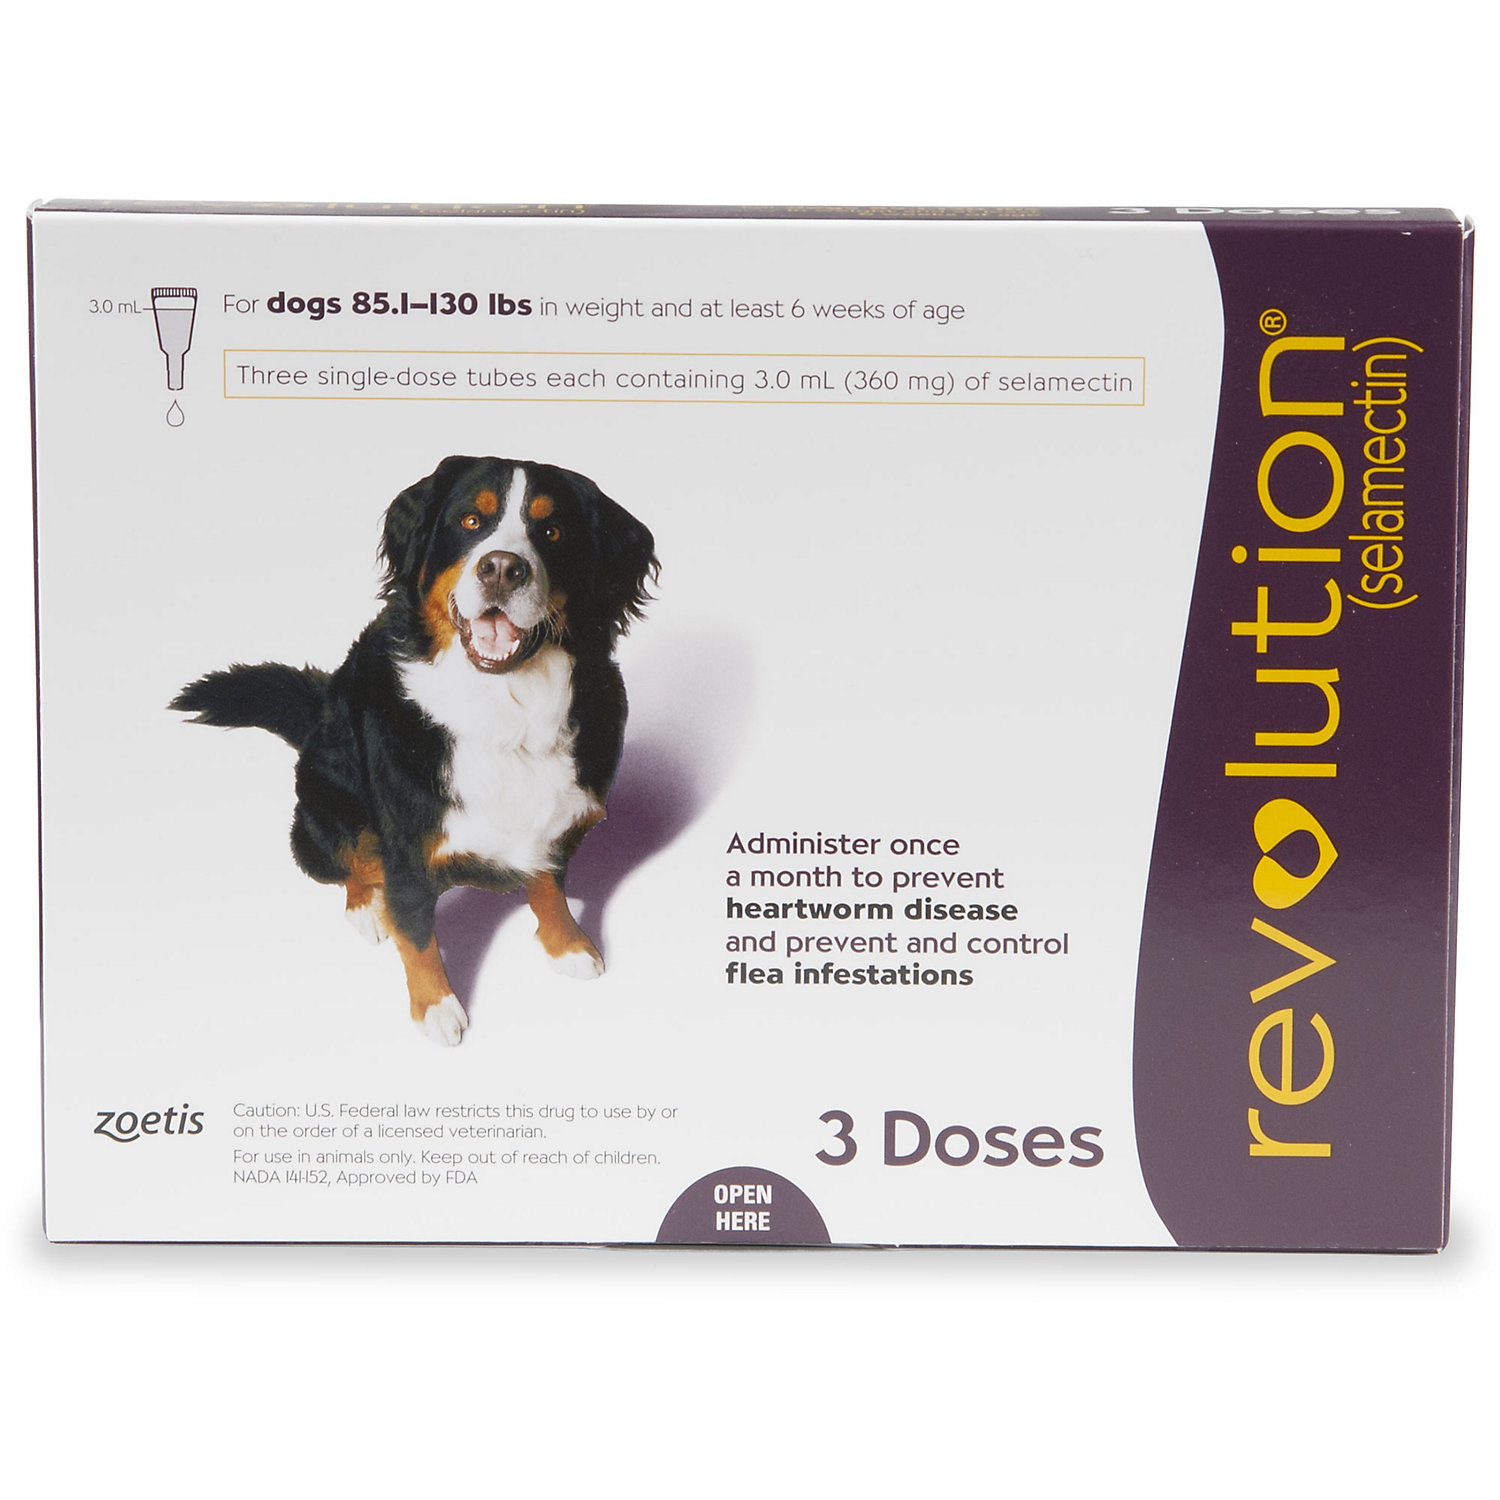 Revolution Topical Solution For Dogs 85 130 Lbs Plum 3 Pack Topical Dog Medicine Flea Infestation